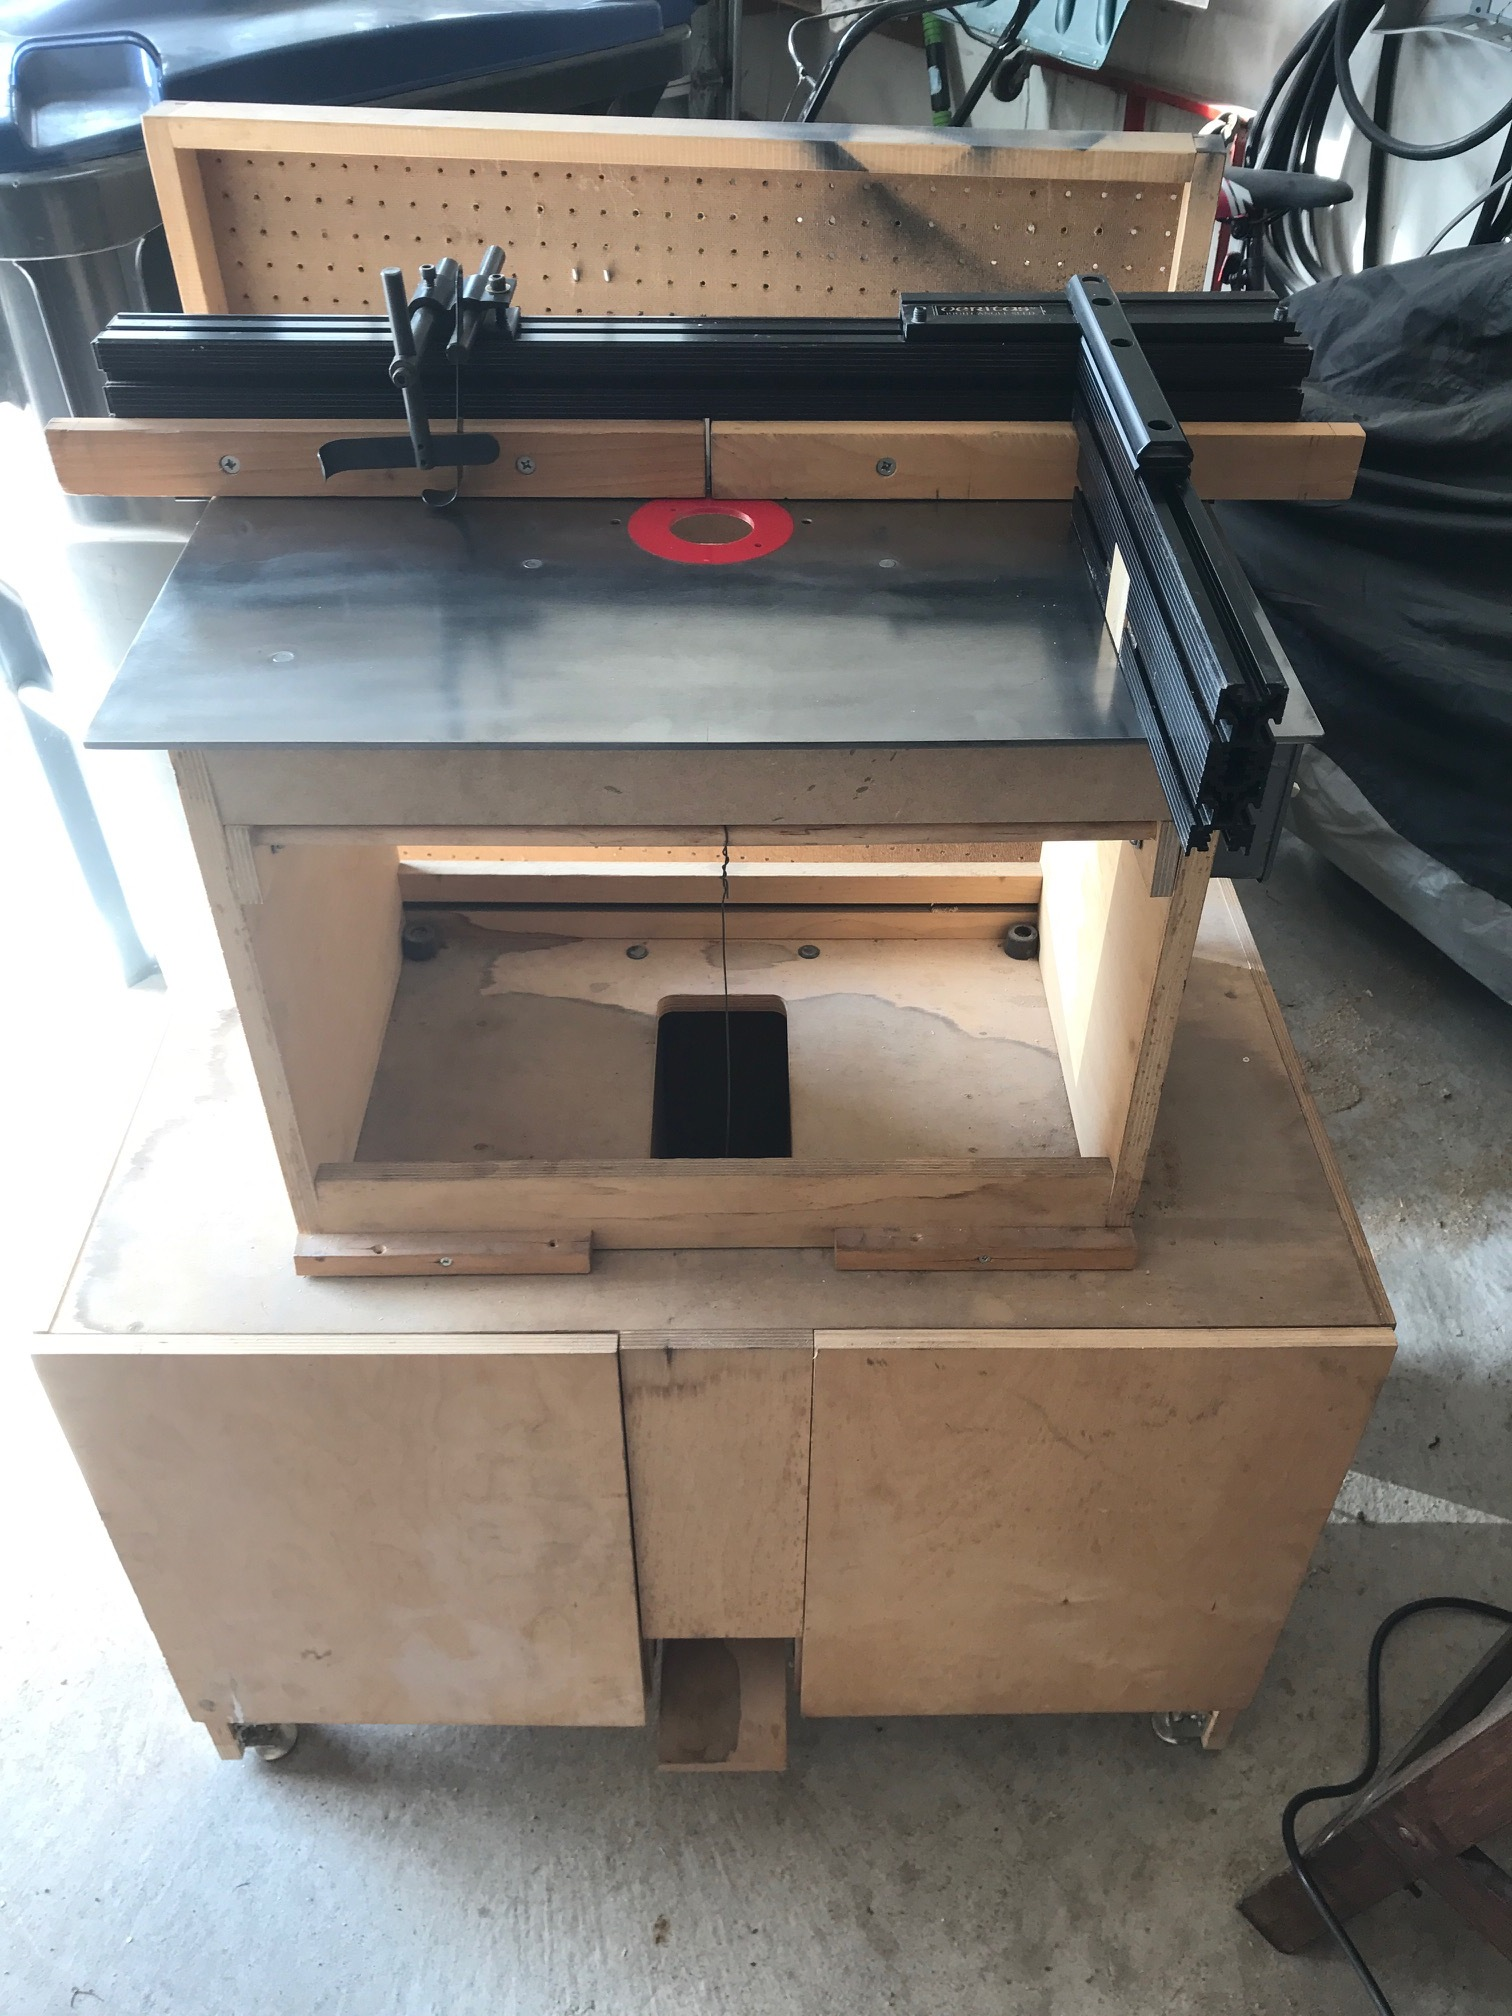 Veritas router table canadian woodworking and home improvement forum click image for larger version name img2753g views 1 size 5940 greentooth Choice Image